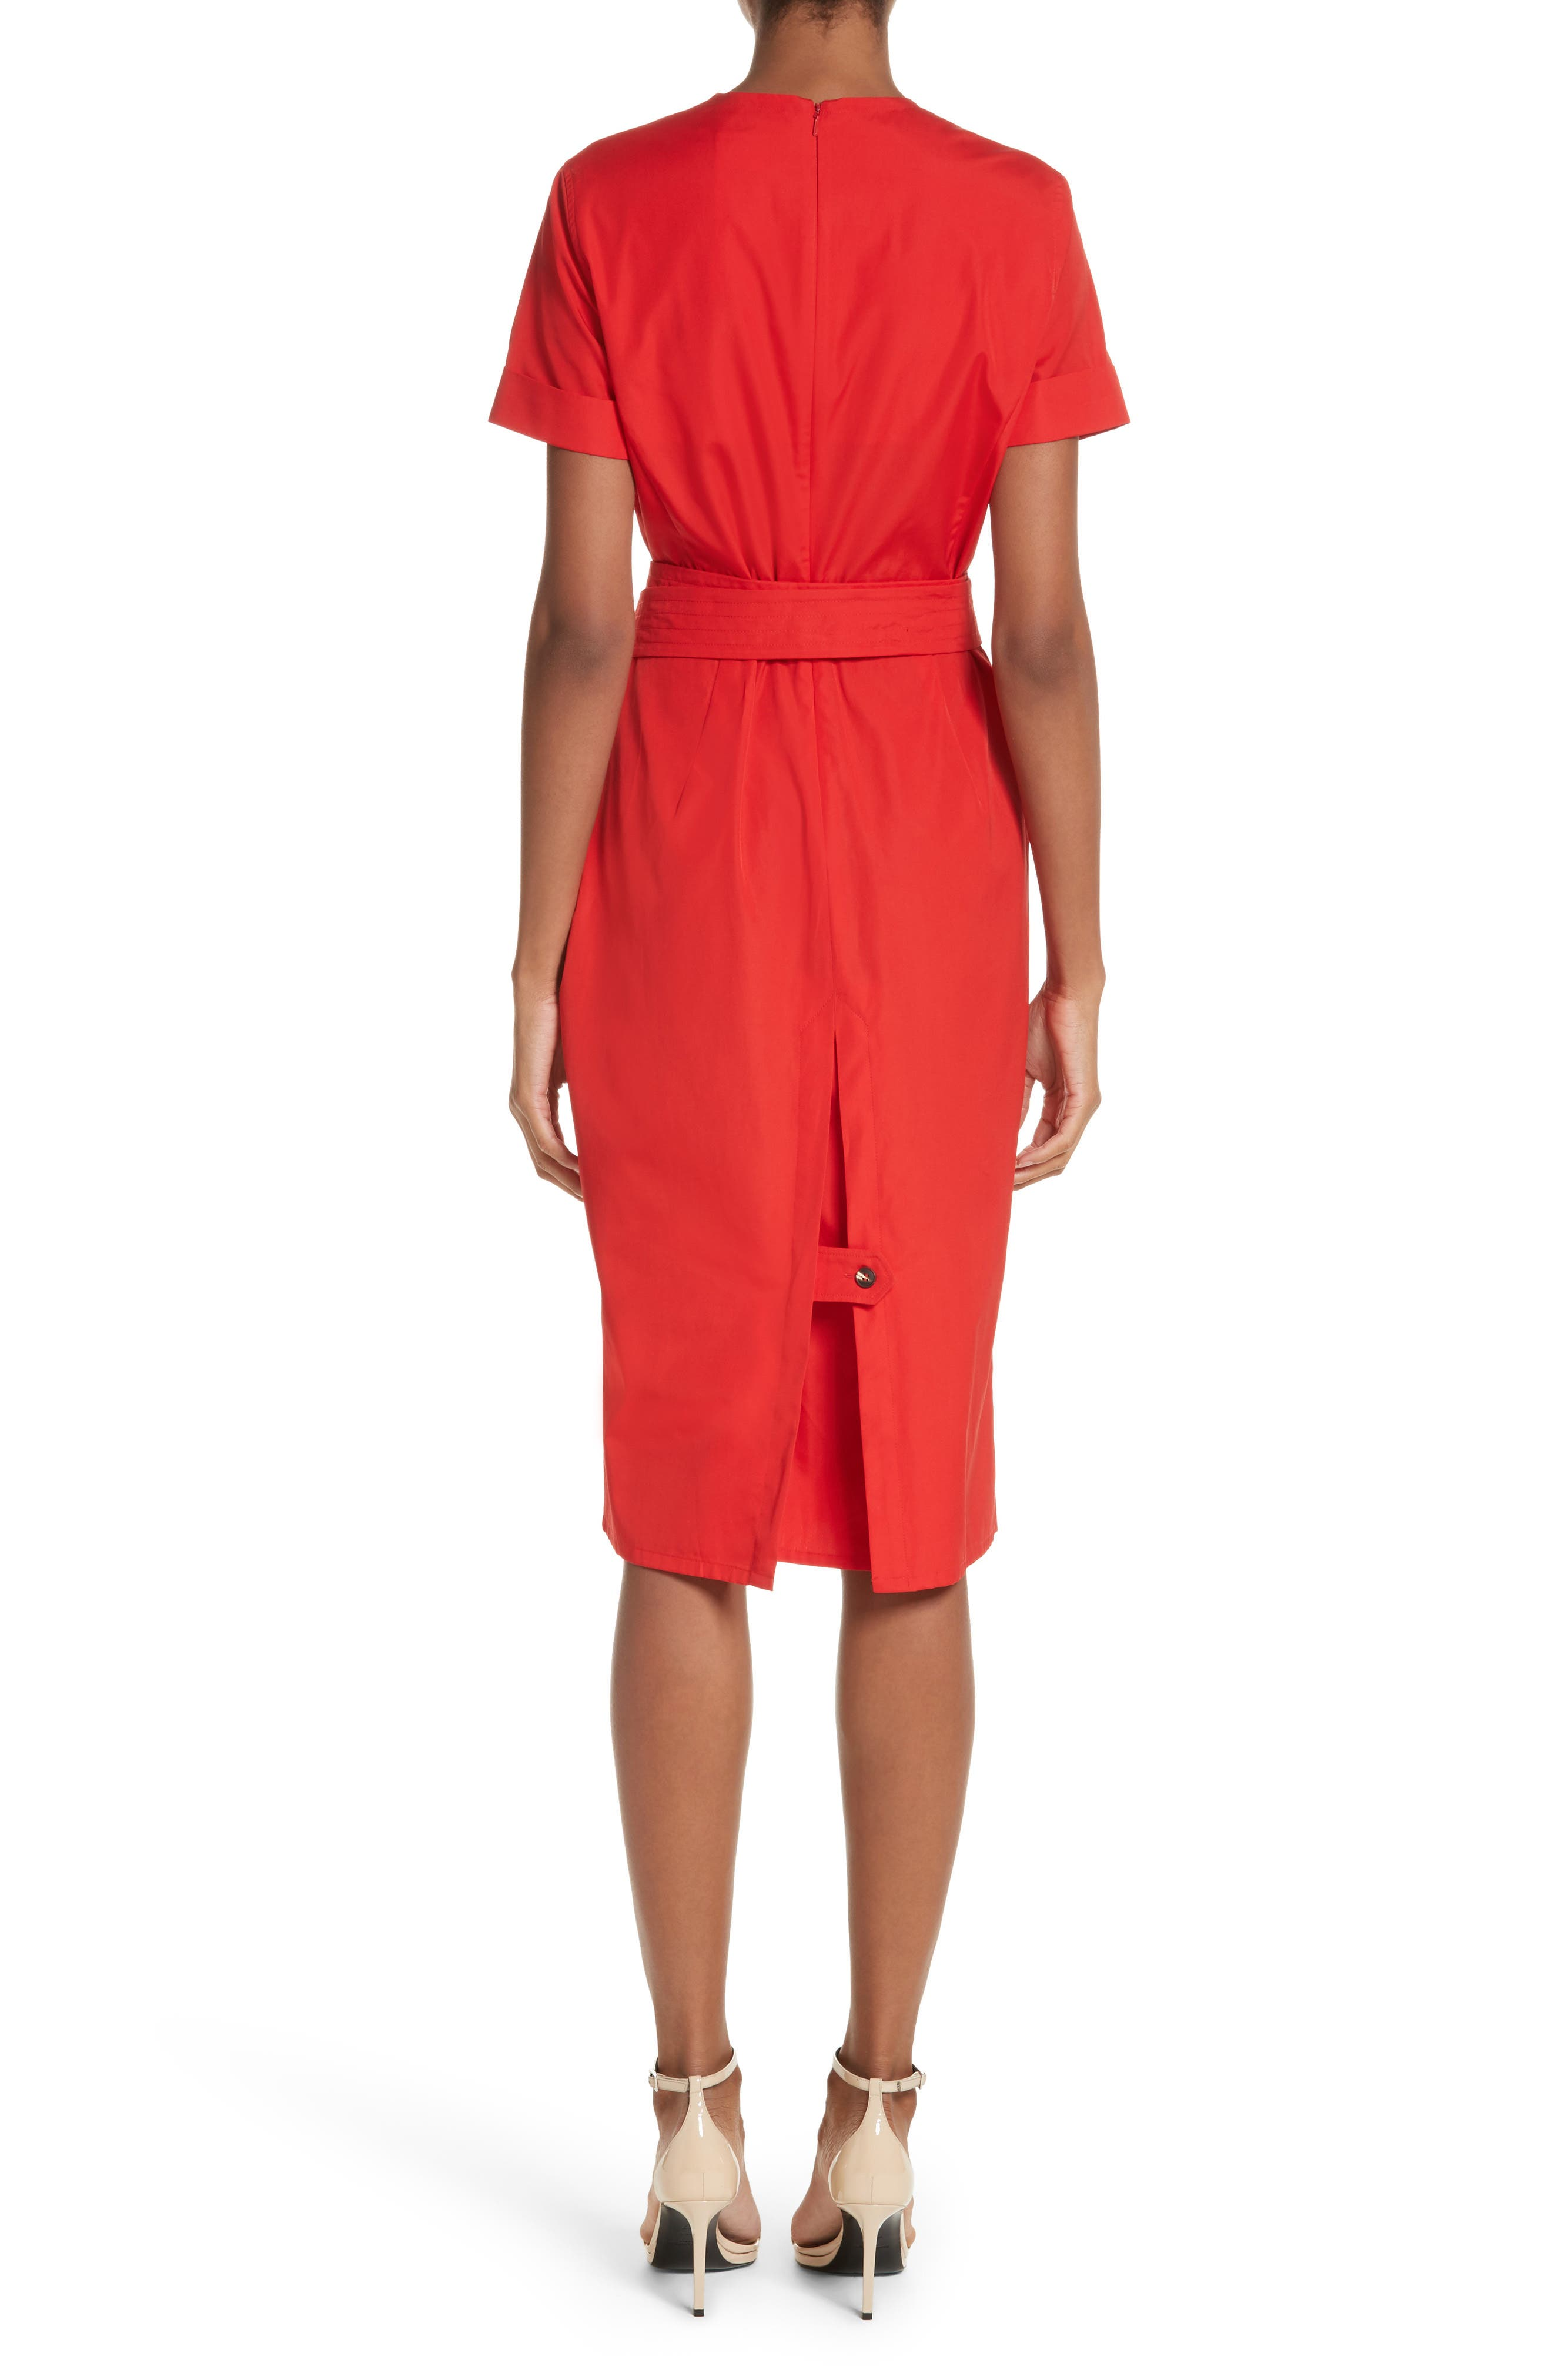 Dalmine Cotton Wrap Dress,                             Alternate thumbnail 2, color,                             Red